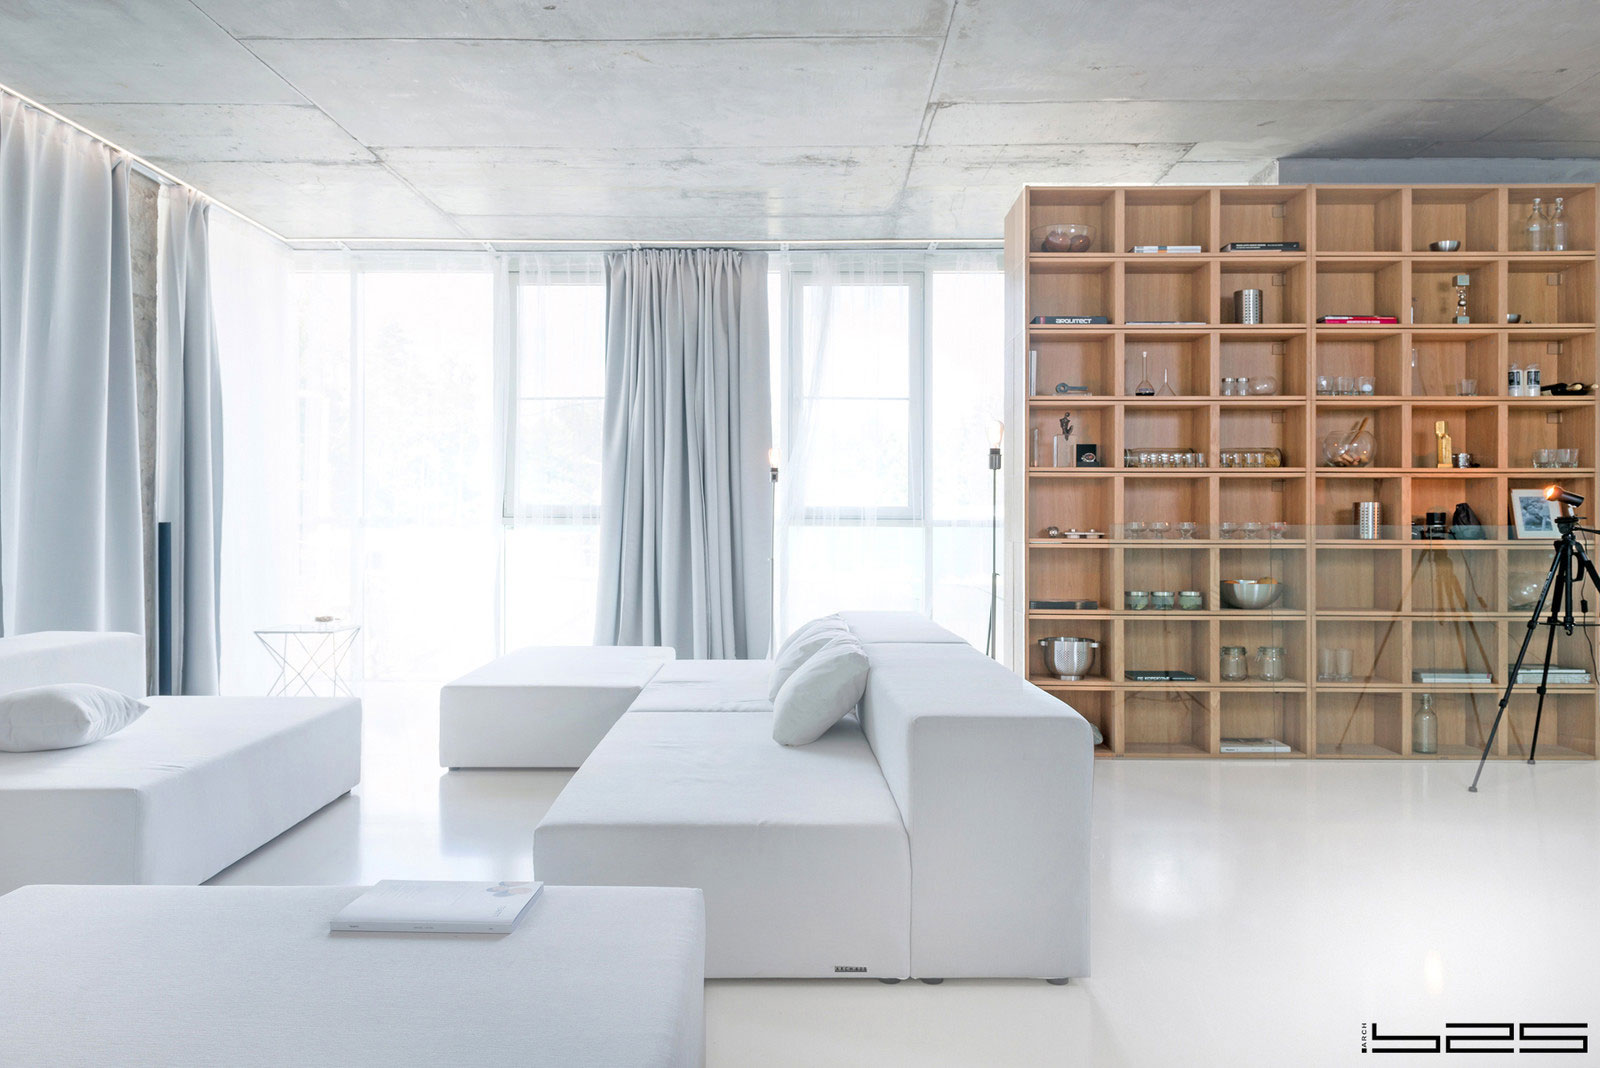 ARCH.625 Design a Minimalist Apartment in Moscow, Russia